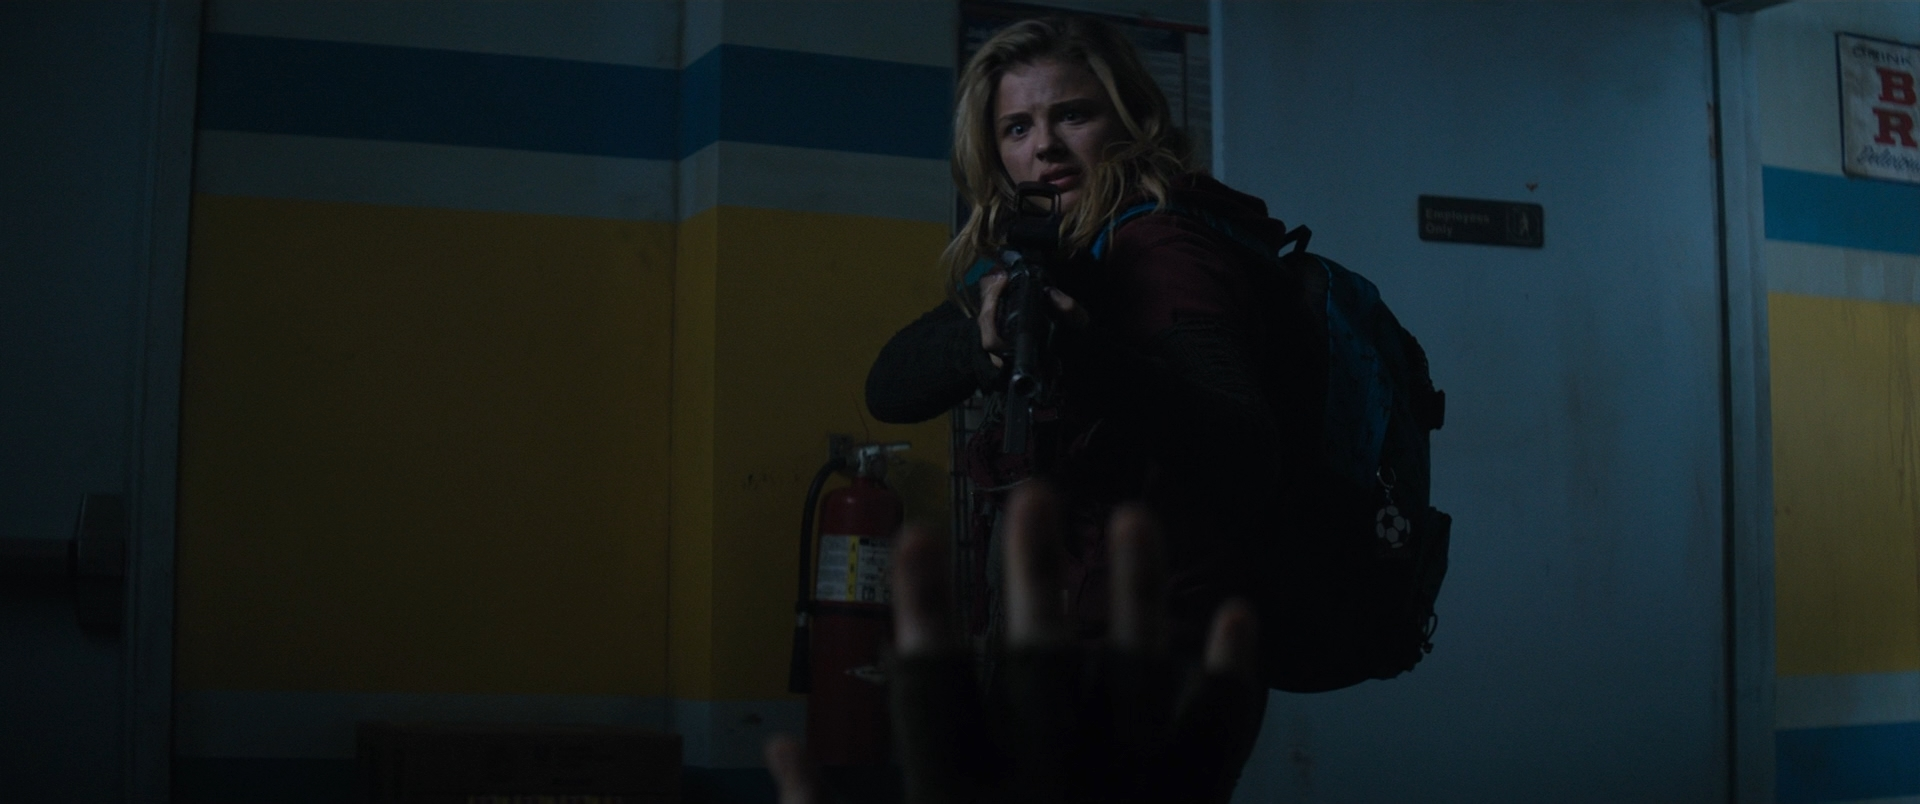 5-я волна — The 5th Wave (2016)  BDRip 1080p